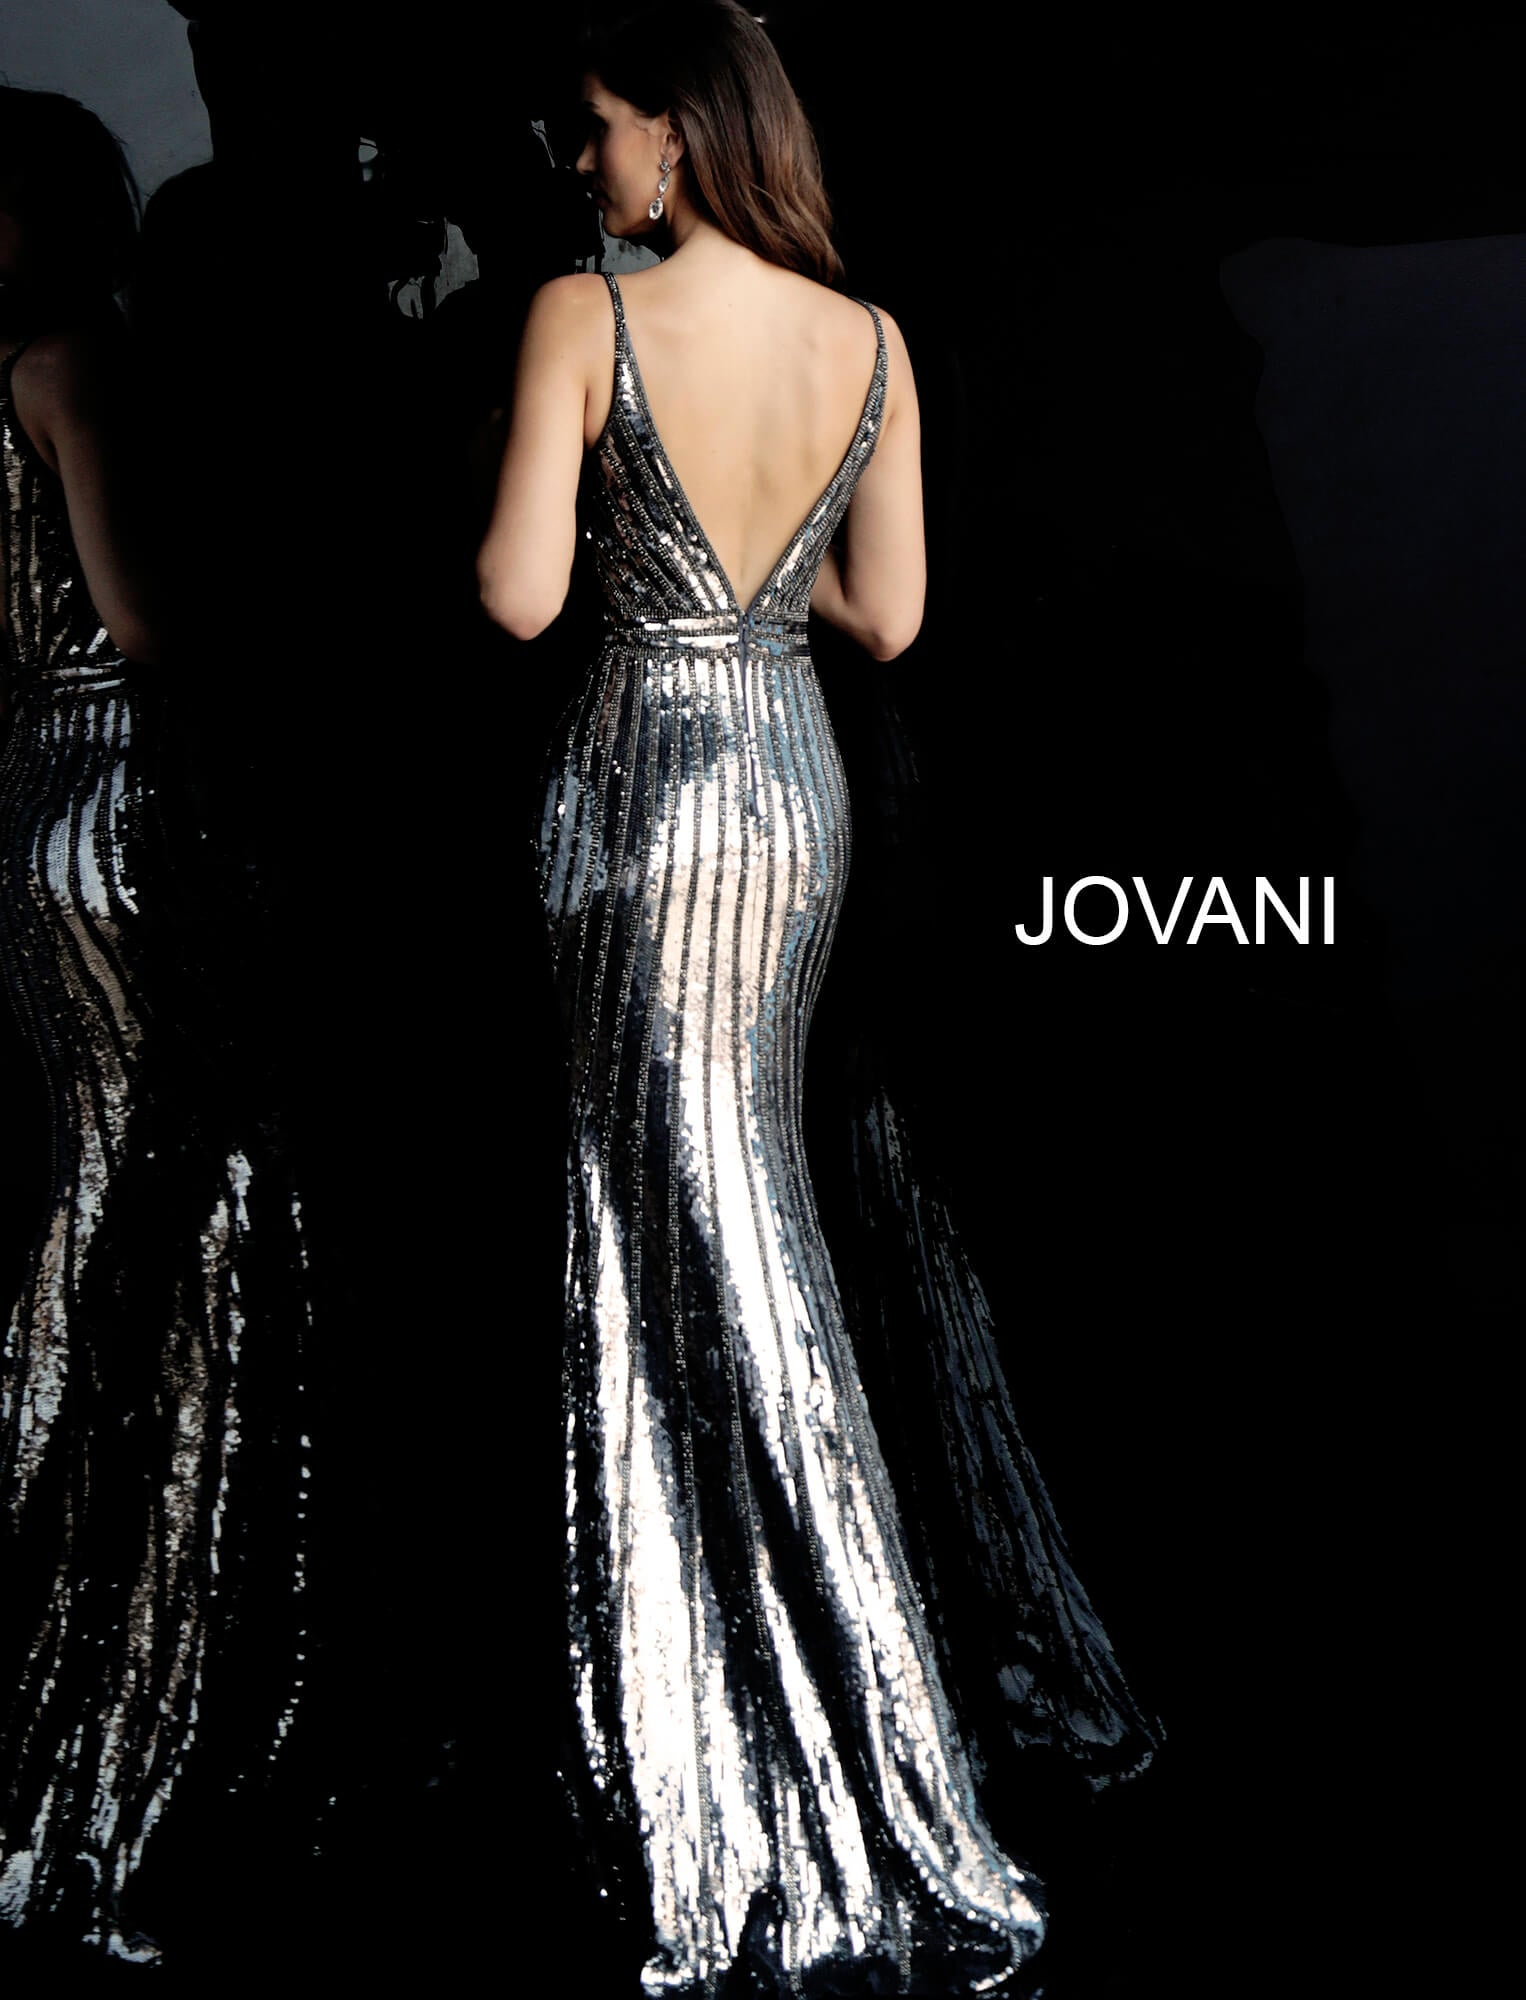 Jovani  Silver Beaded Gown - Gissings Boutique